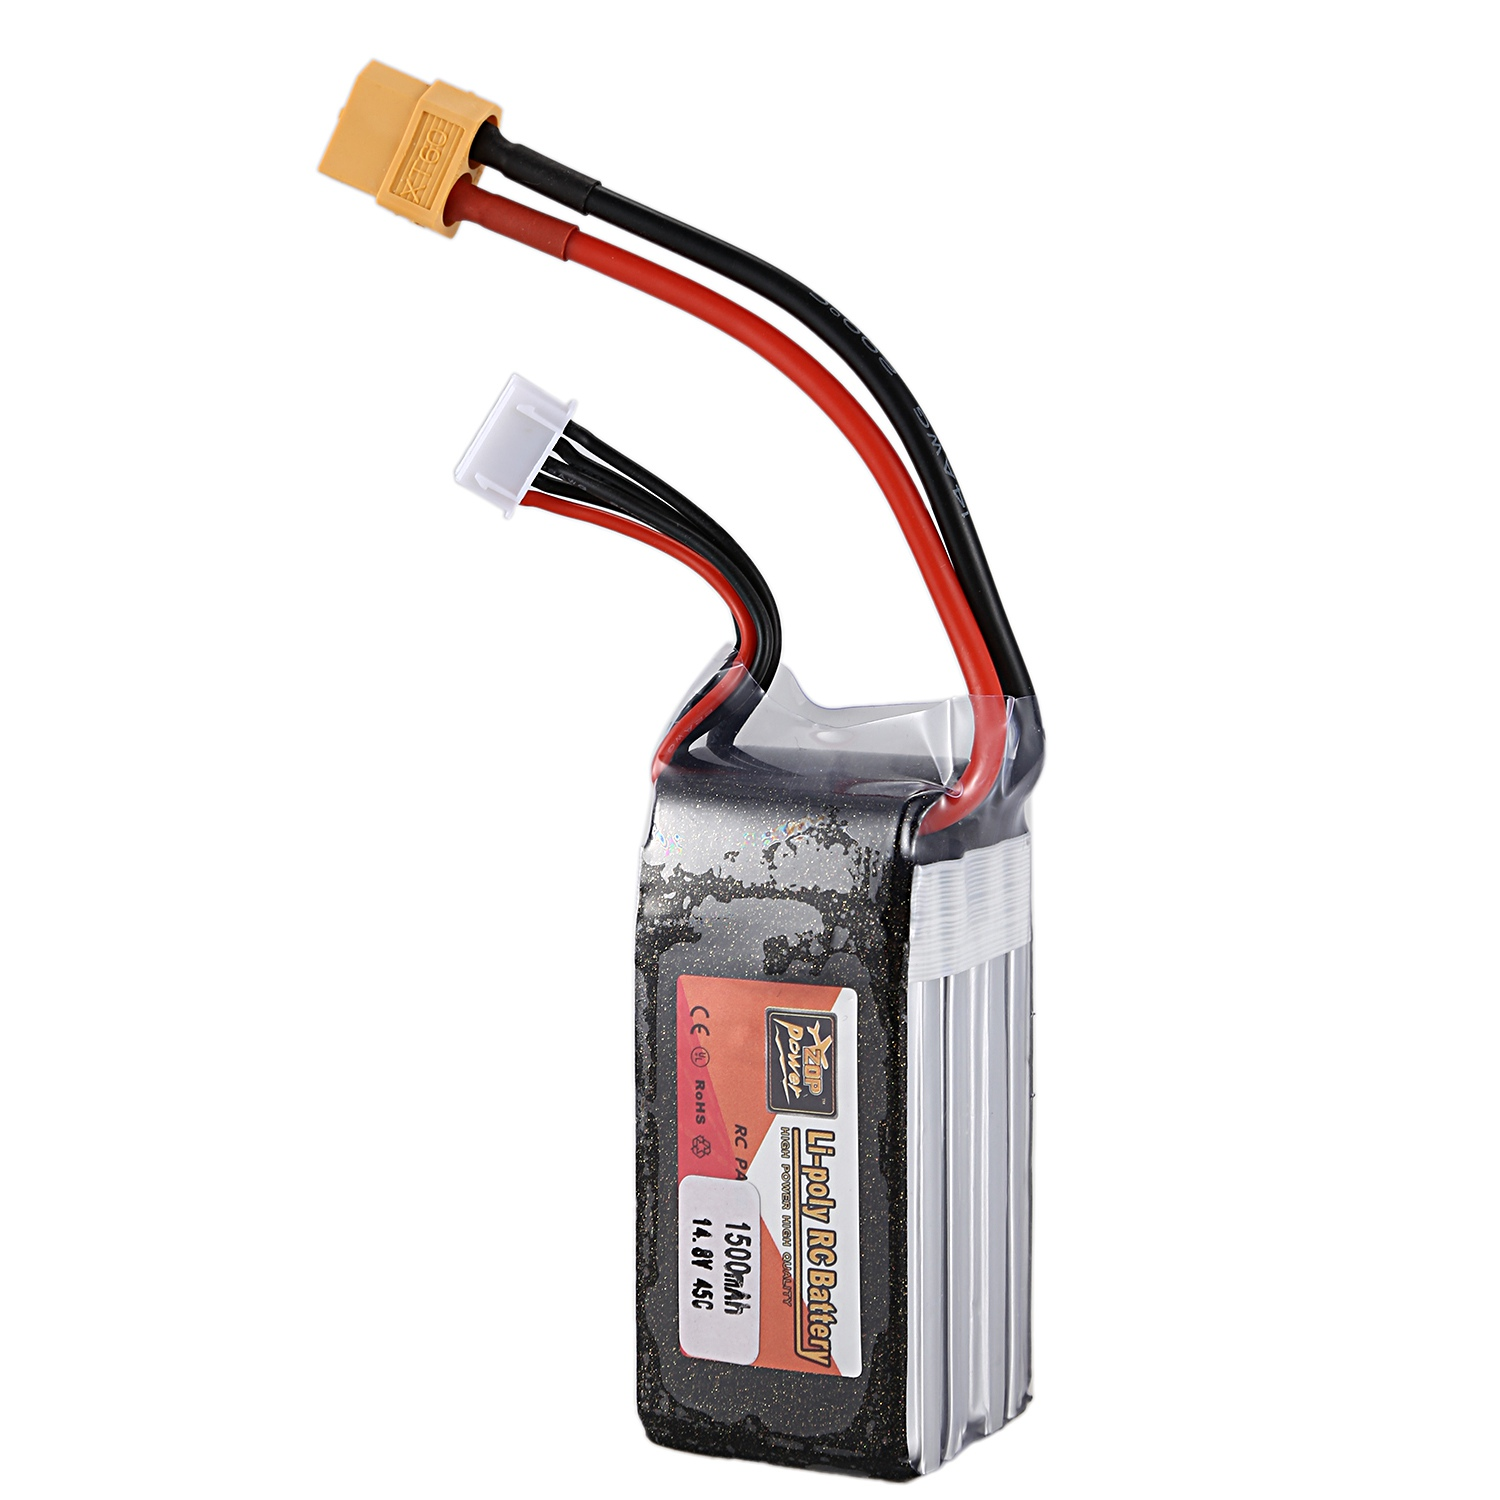 Zop Power 14.8V 1500Mah 45C 4S 1P Lipo Battery T Plug Rechargeable For Rc Racing Drone Quadcopter Helicopter Car Boat